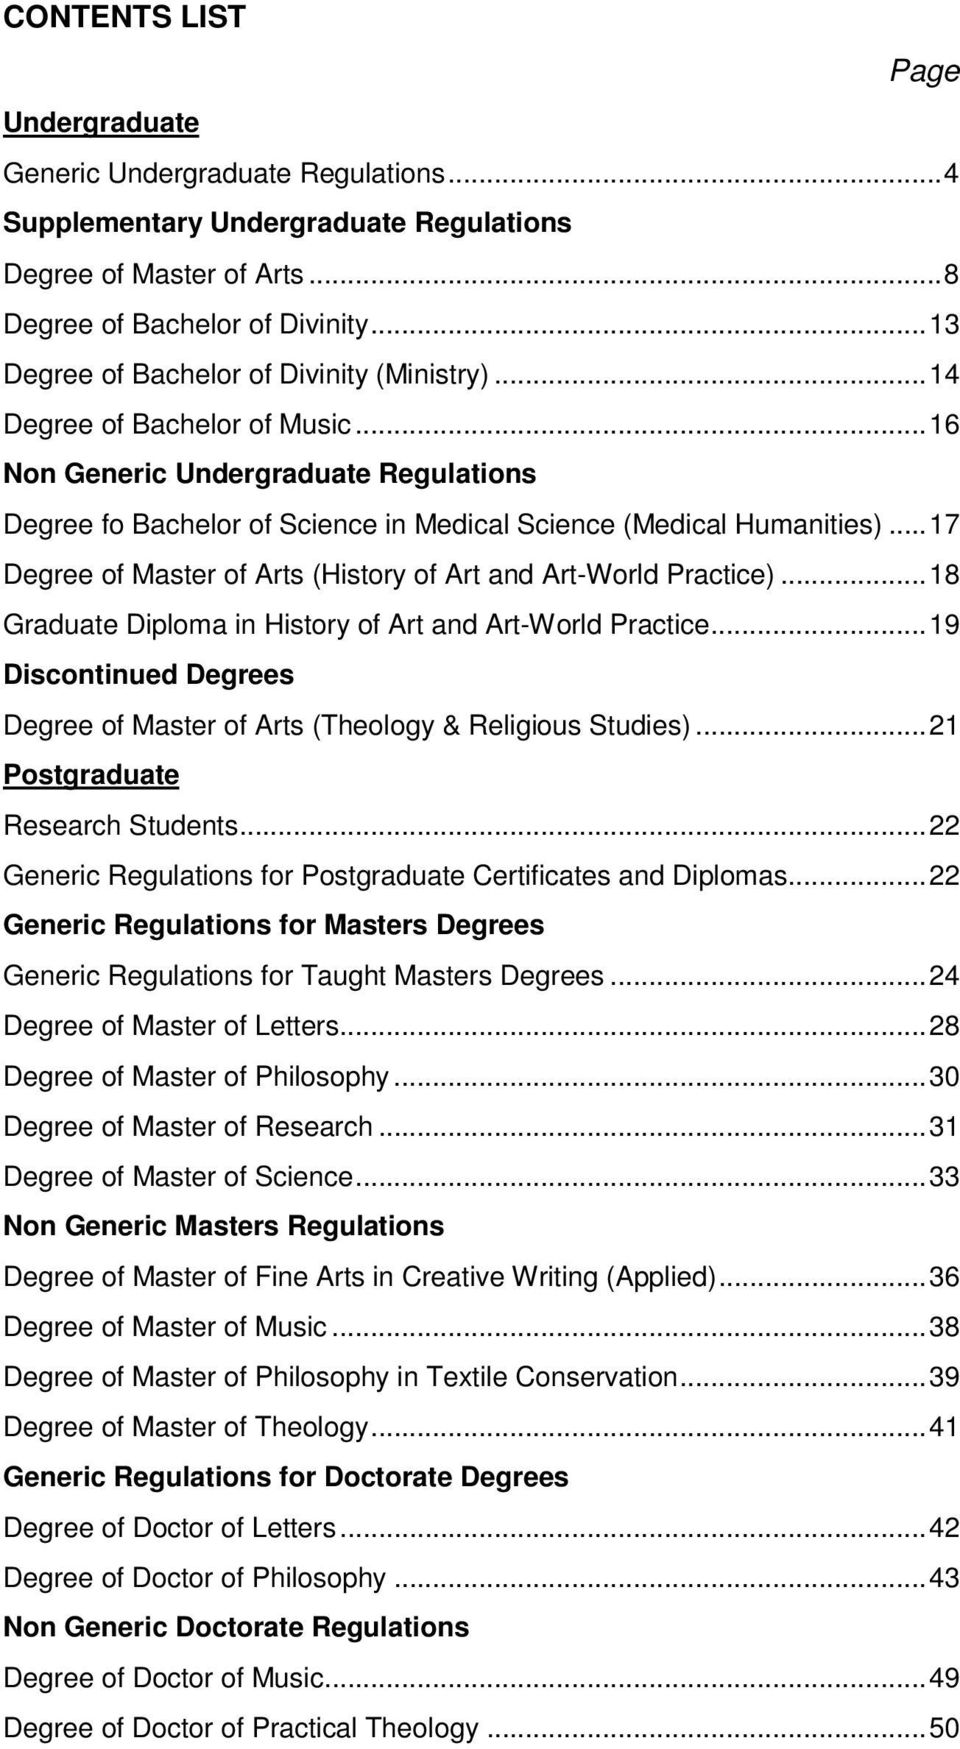 .. 17 Degree of Master of Arts (History of Art and Art-World Practice)... 18 Graduate Diploma in History of Art and Art-World Practice.